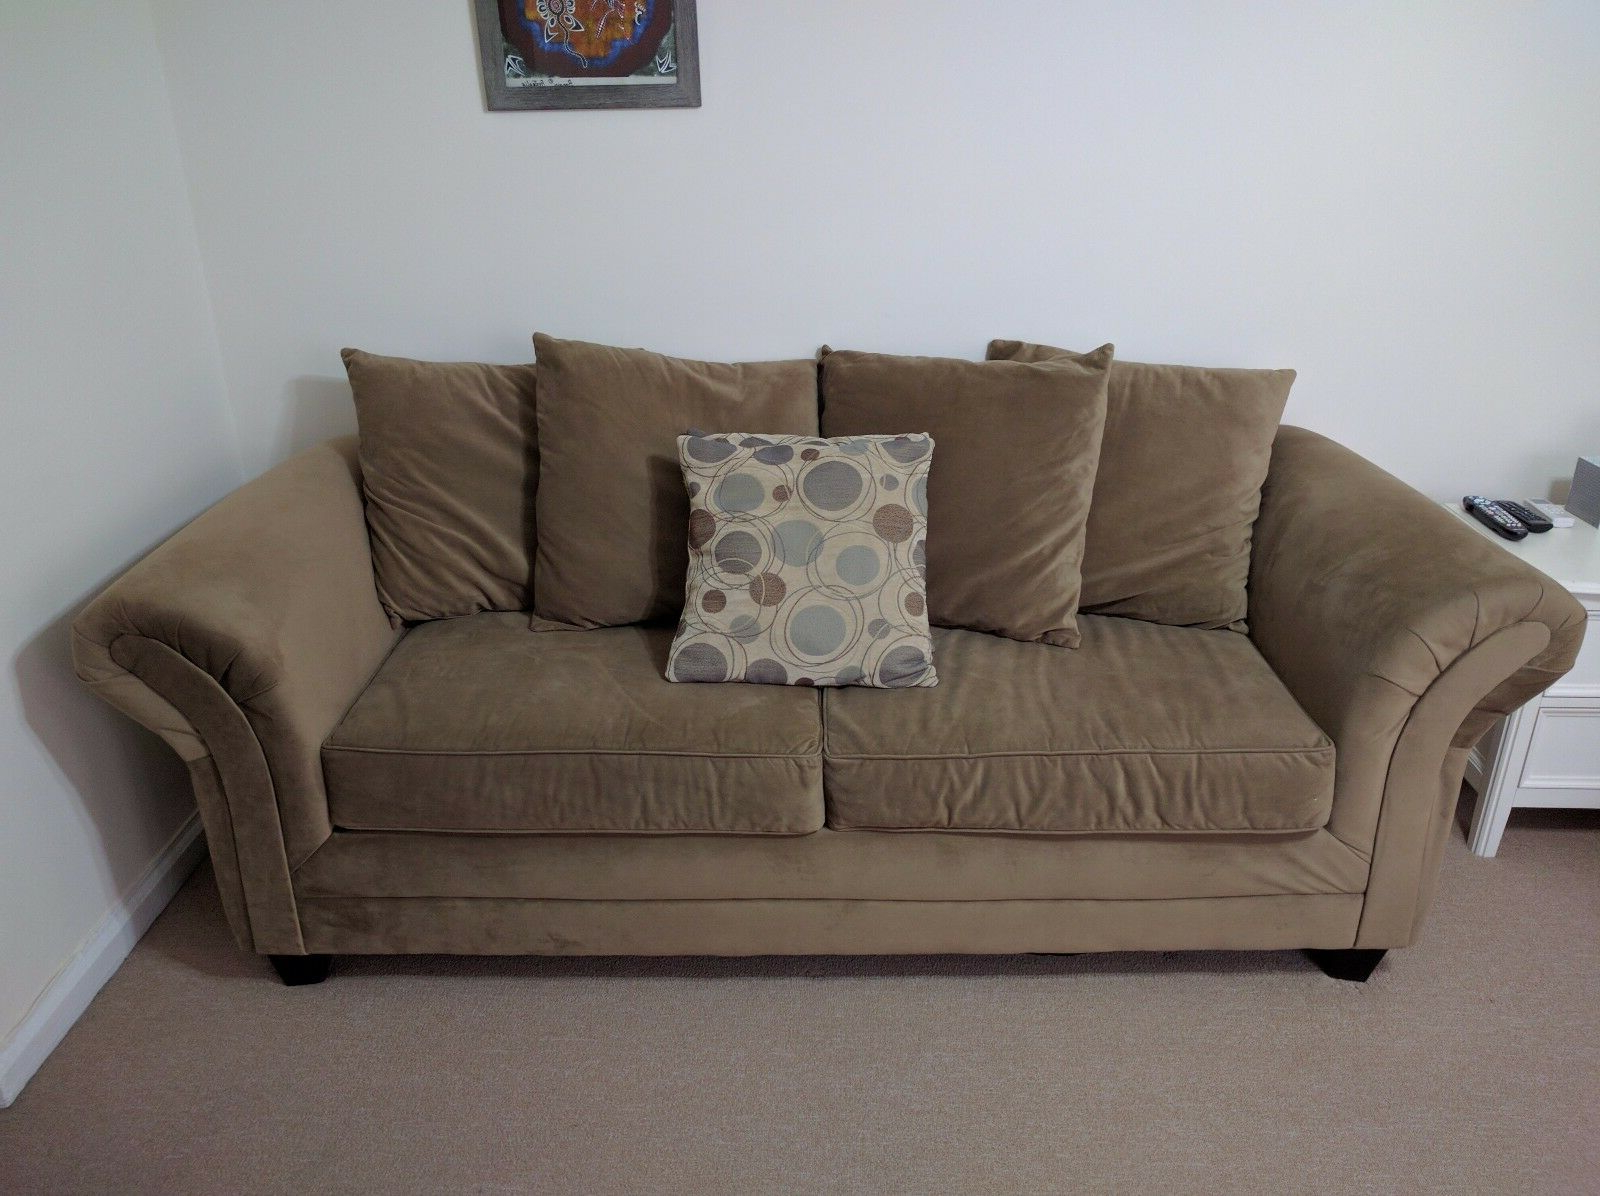 Bob's Discount Furniture: Desert Sand Suede 3 Seater Sofa Pertaining To Most Current Symmetry Fabric Power Reclining Sofas (View 1 of 20)